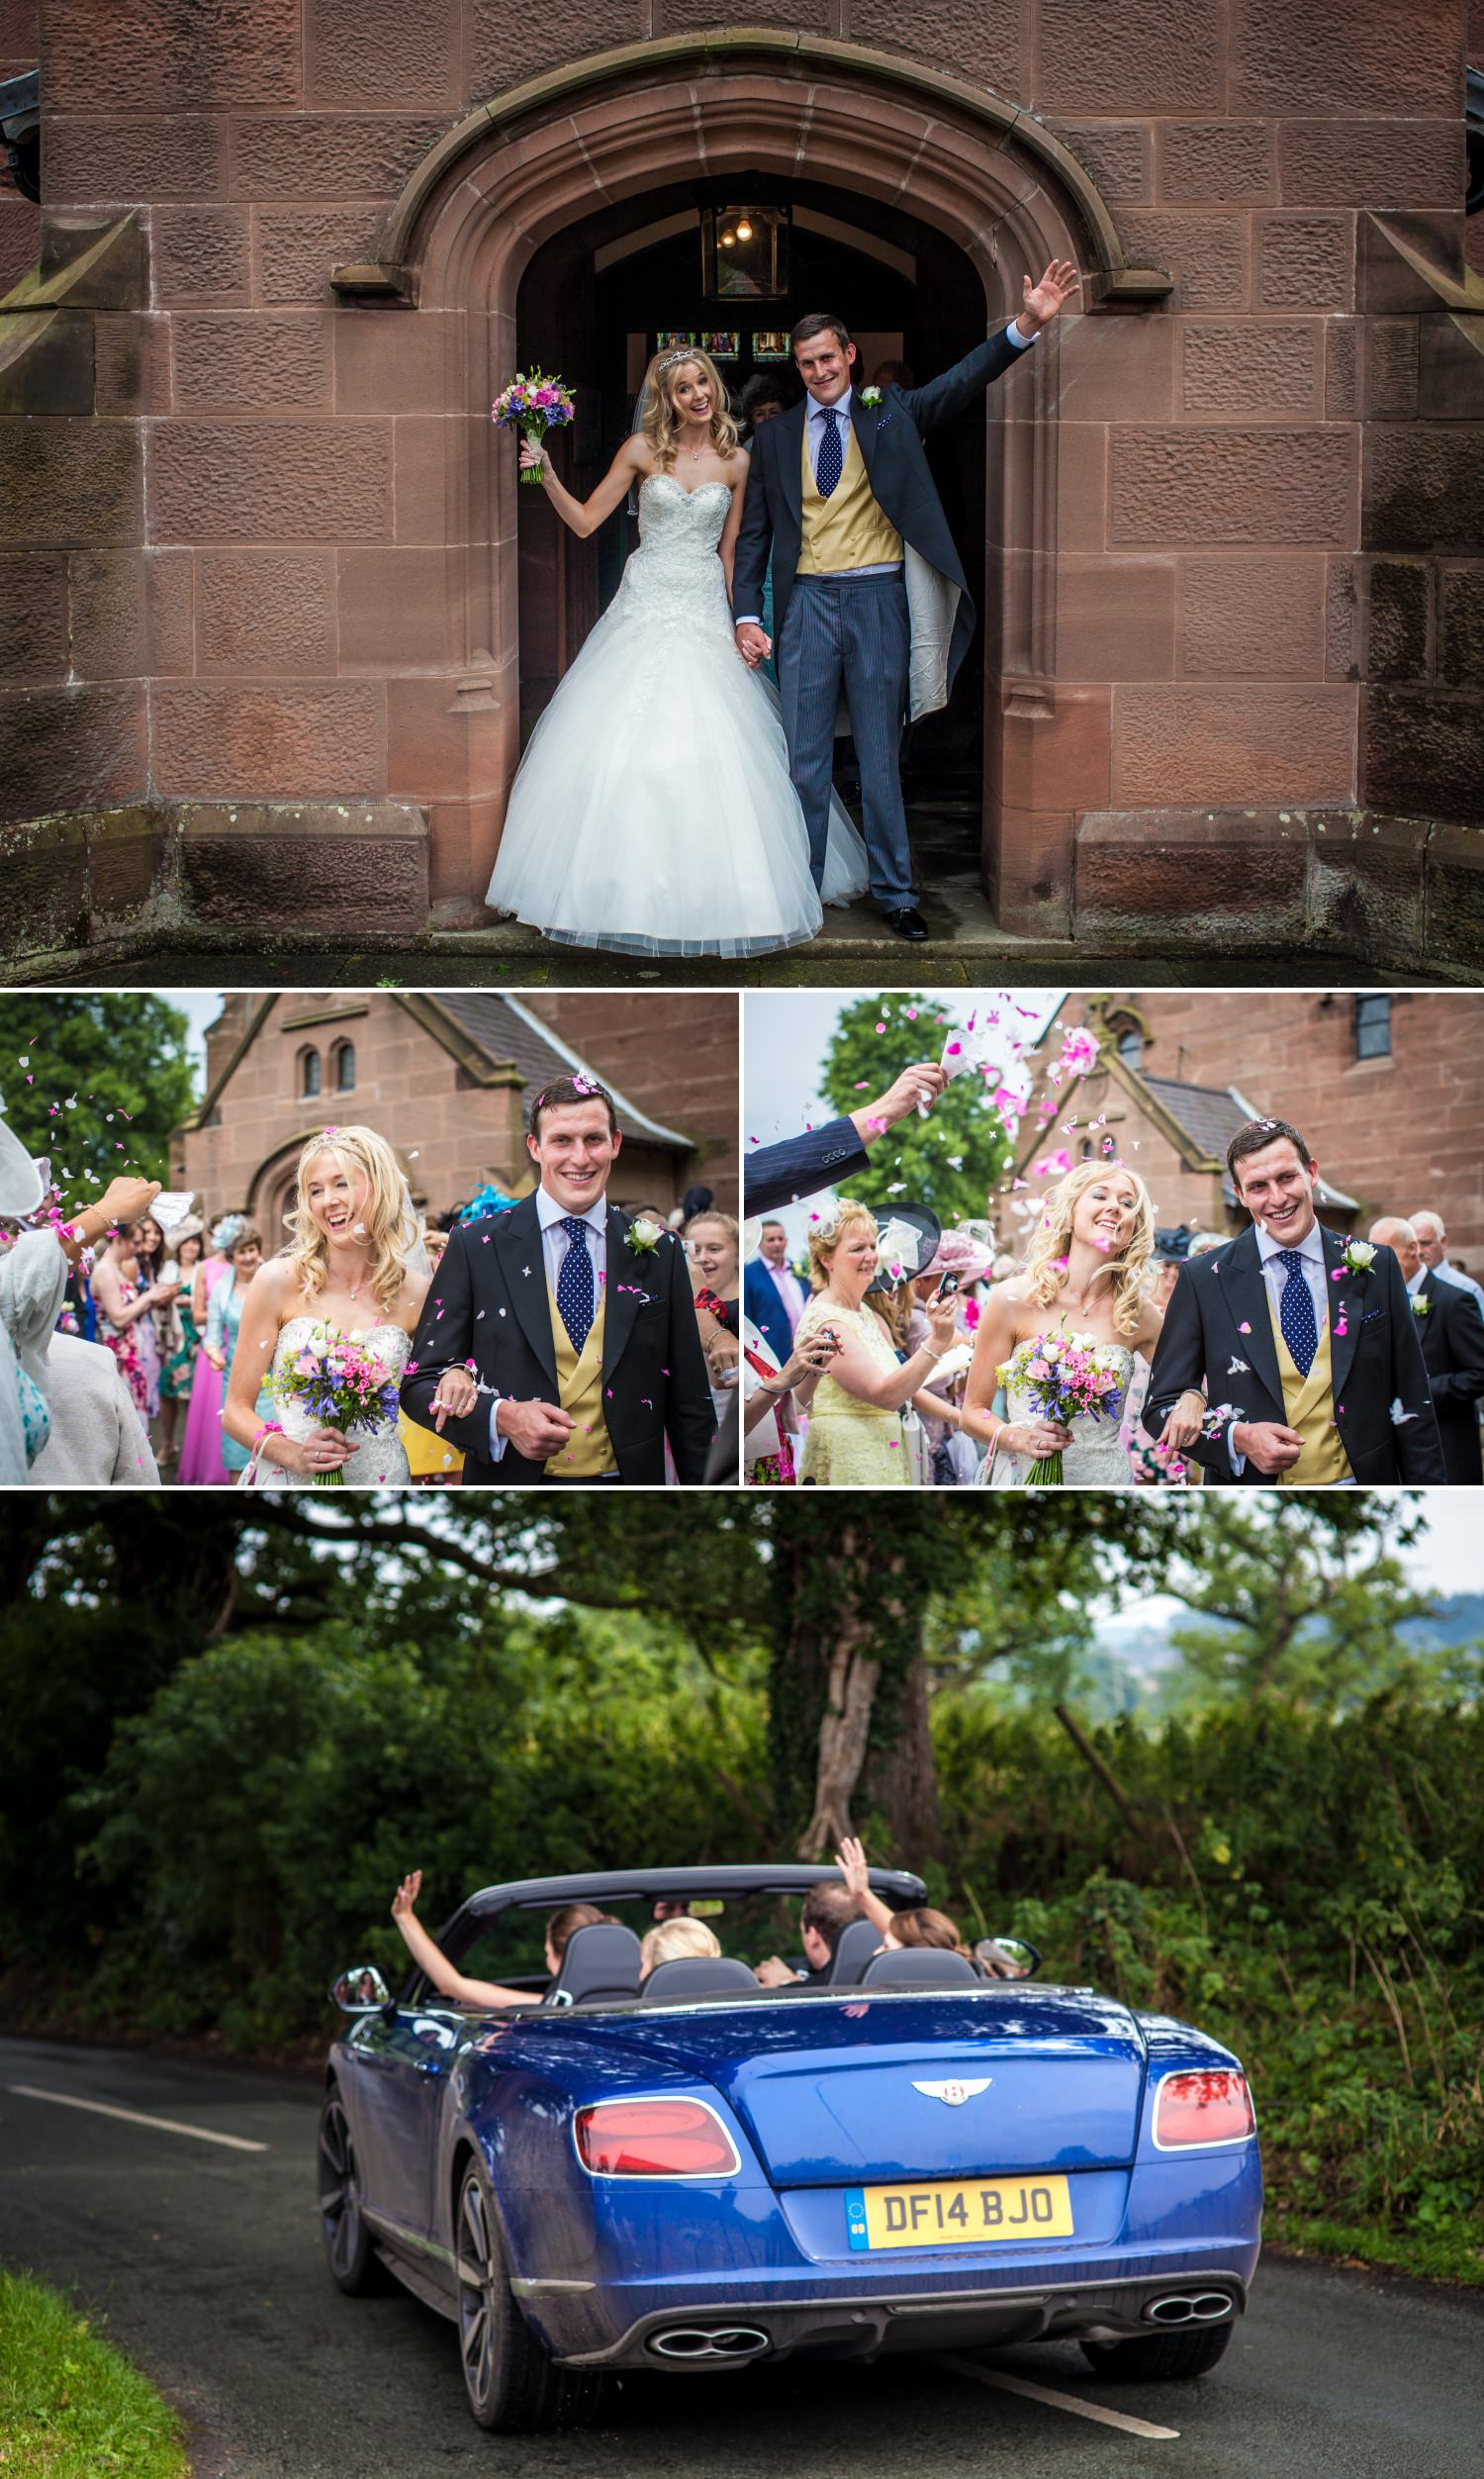 Leaving the wedding ceremony photographs in Cheshire